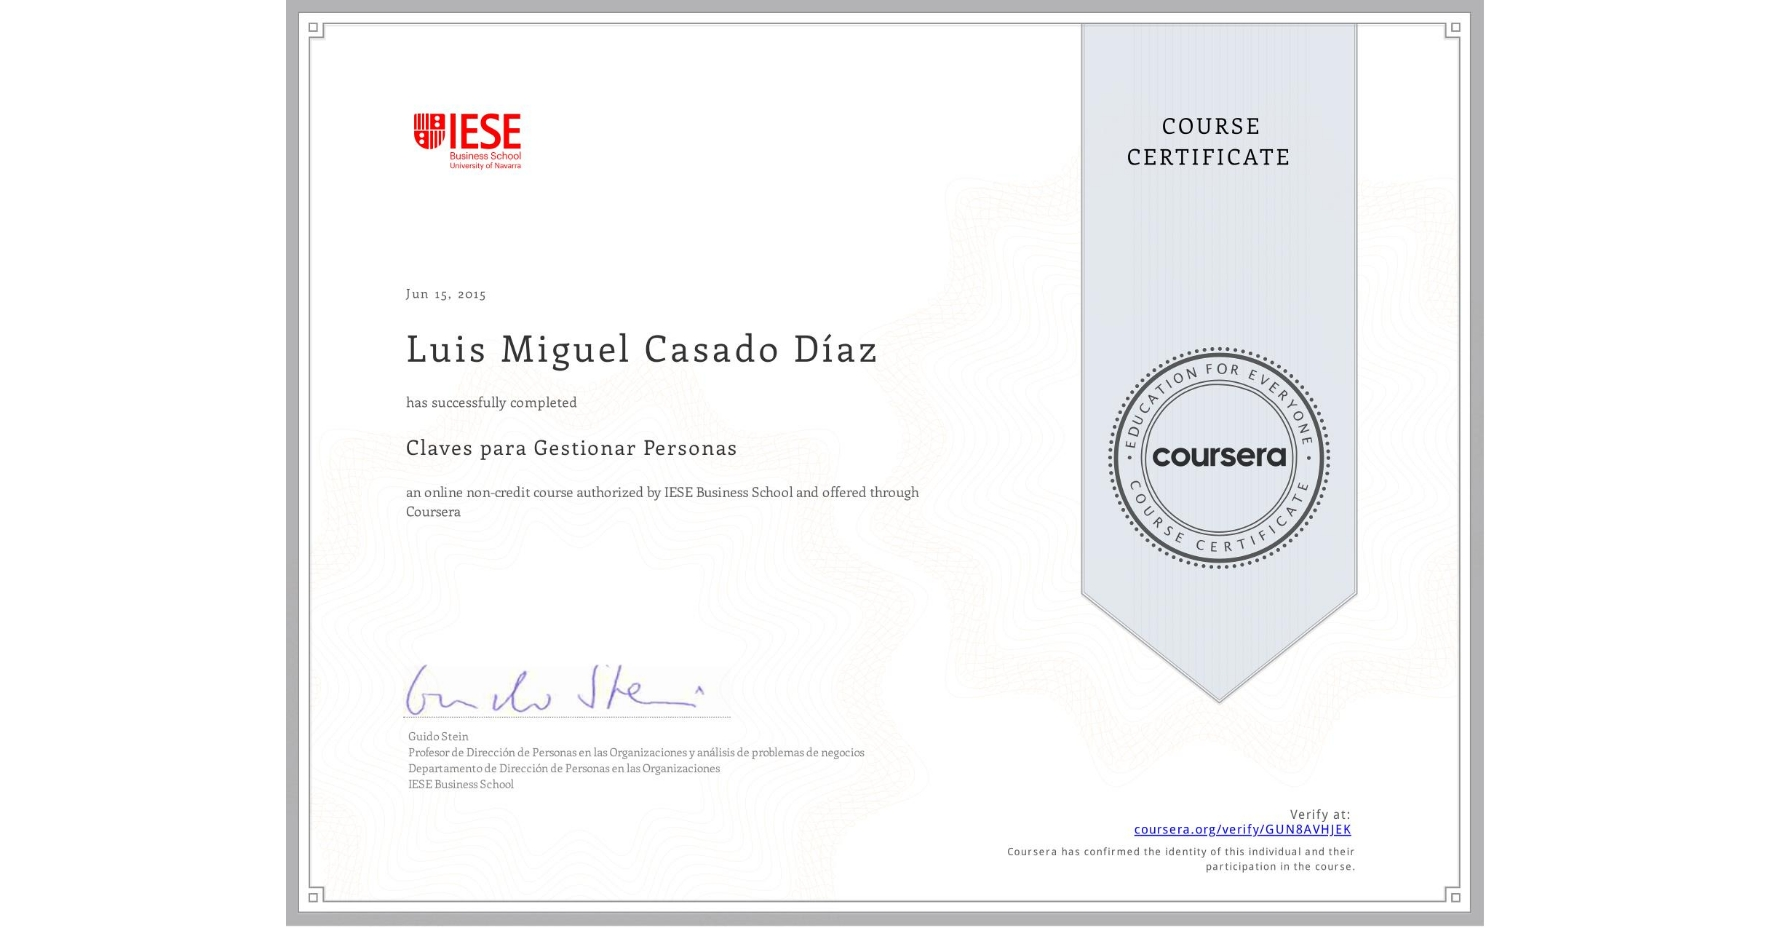 View certificate for Luis Miguel  Casado Díaz, Claves para Gestionar Personas, an online non-credit course authorized by IESE Business School and offered through Coursera